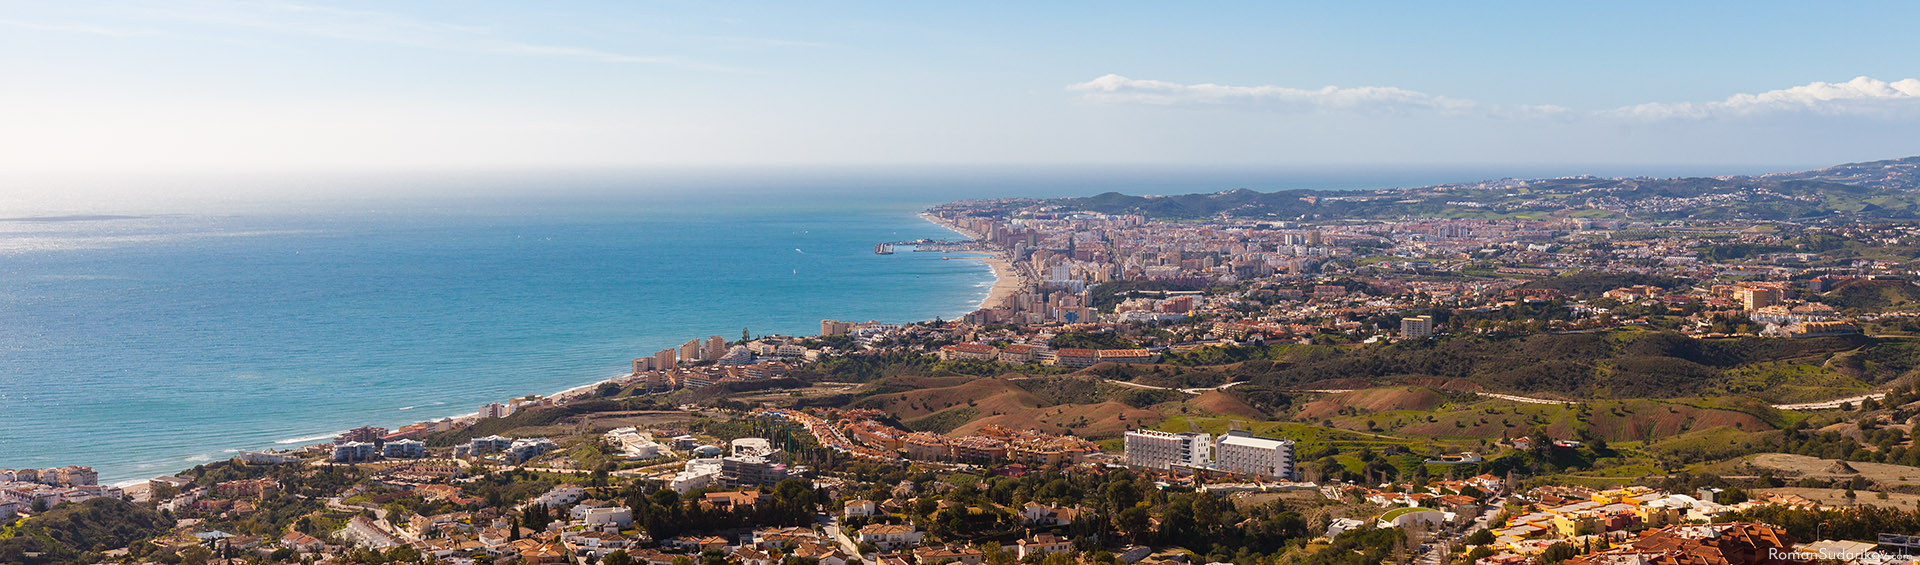 A view of Fuengirola as seen from a mountain. Costa del Sol, Spain.